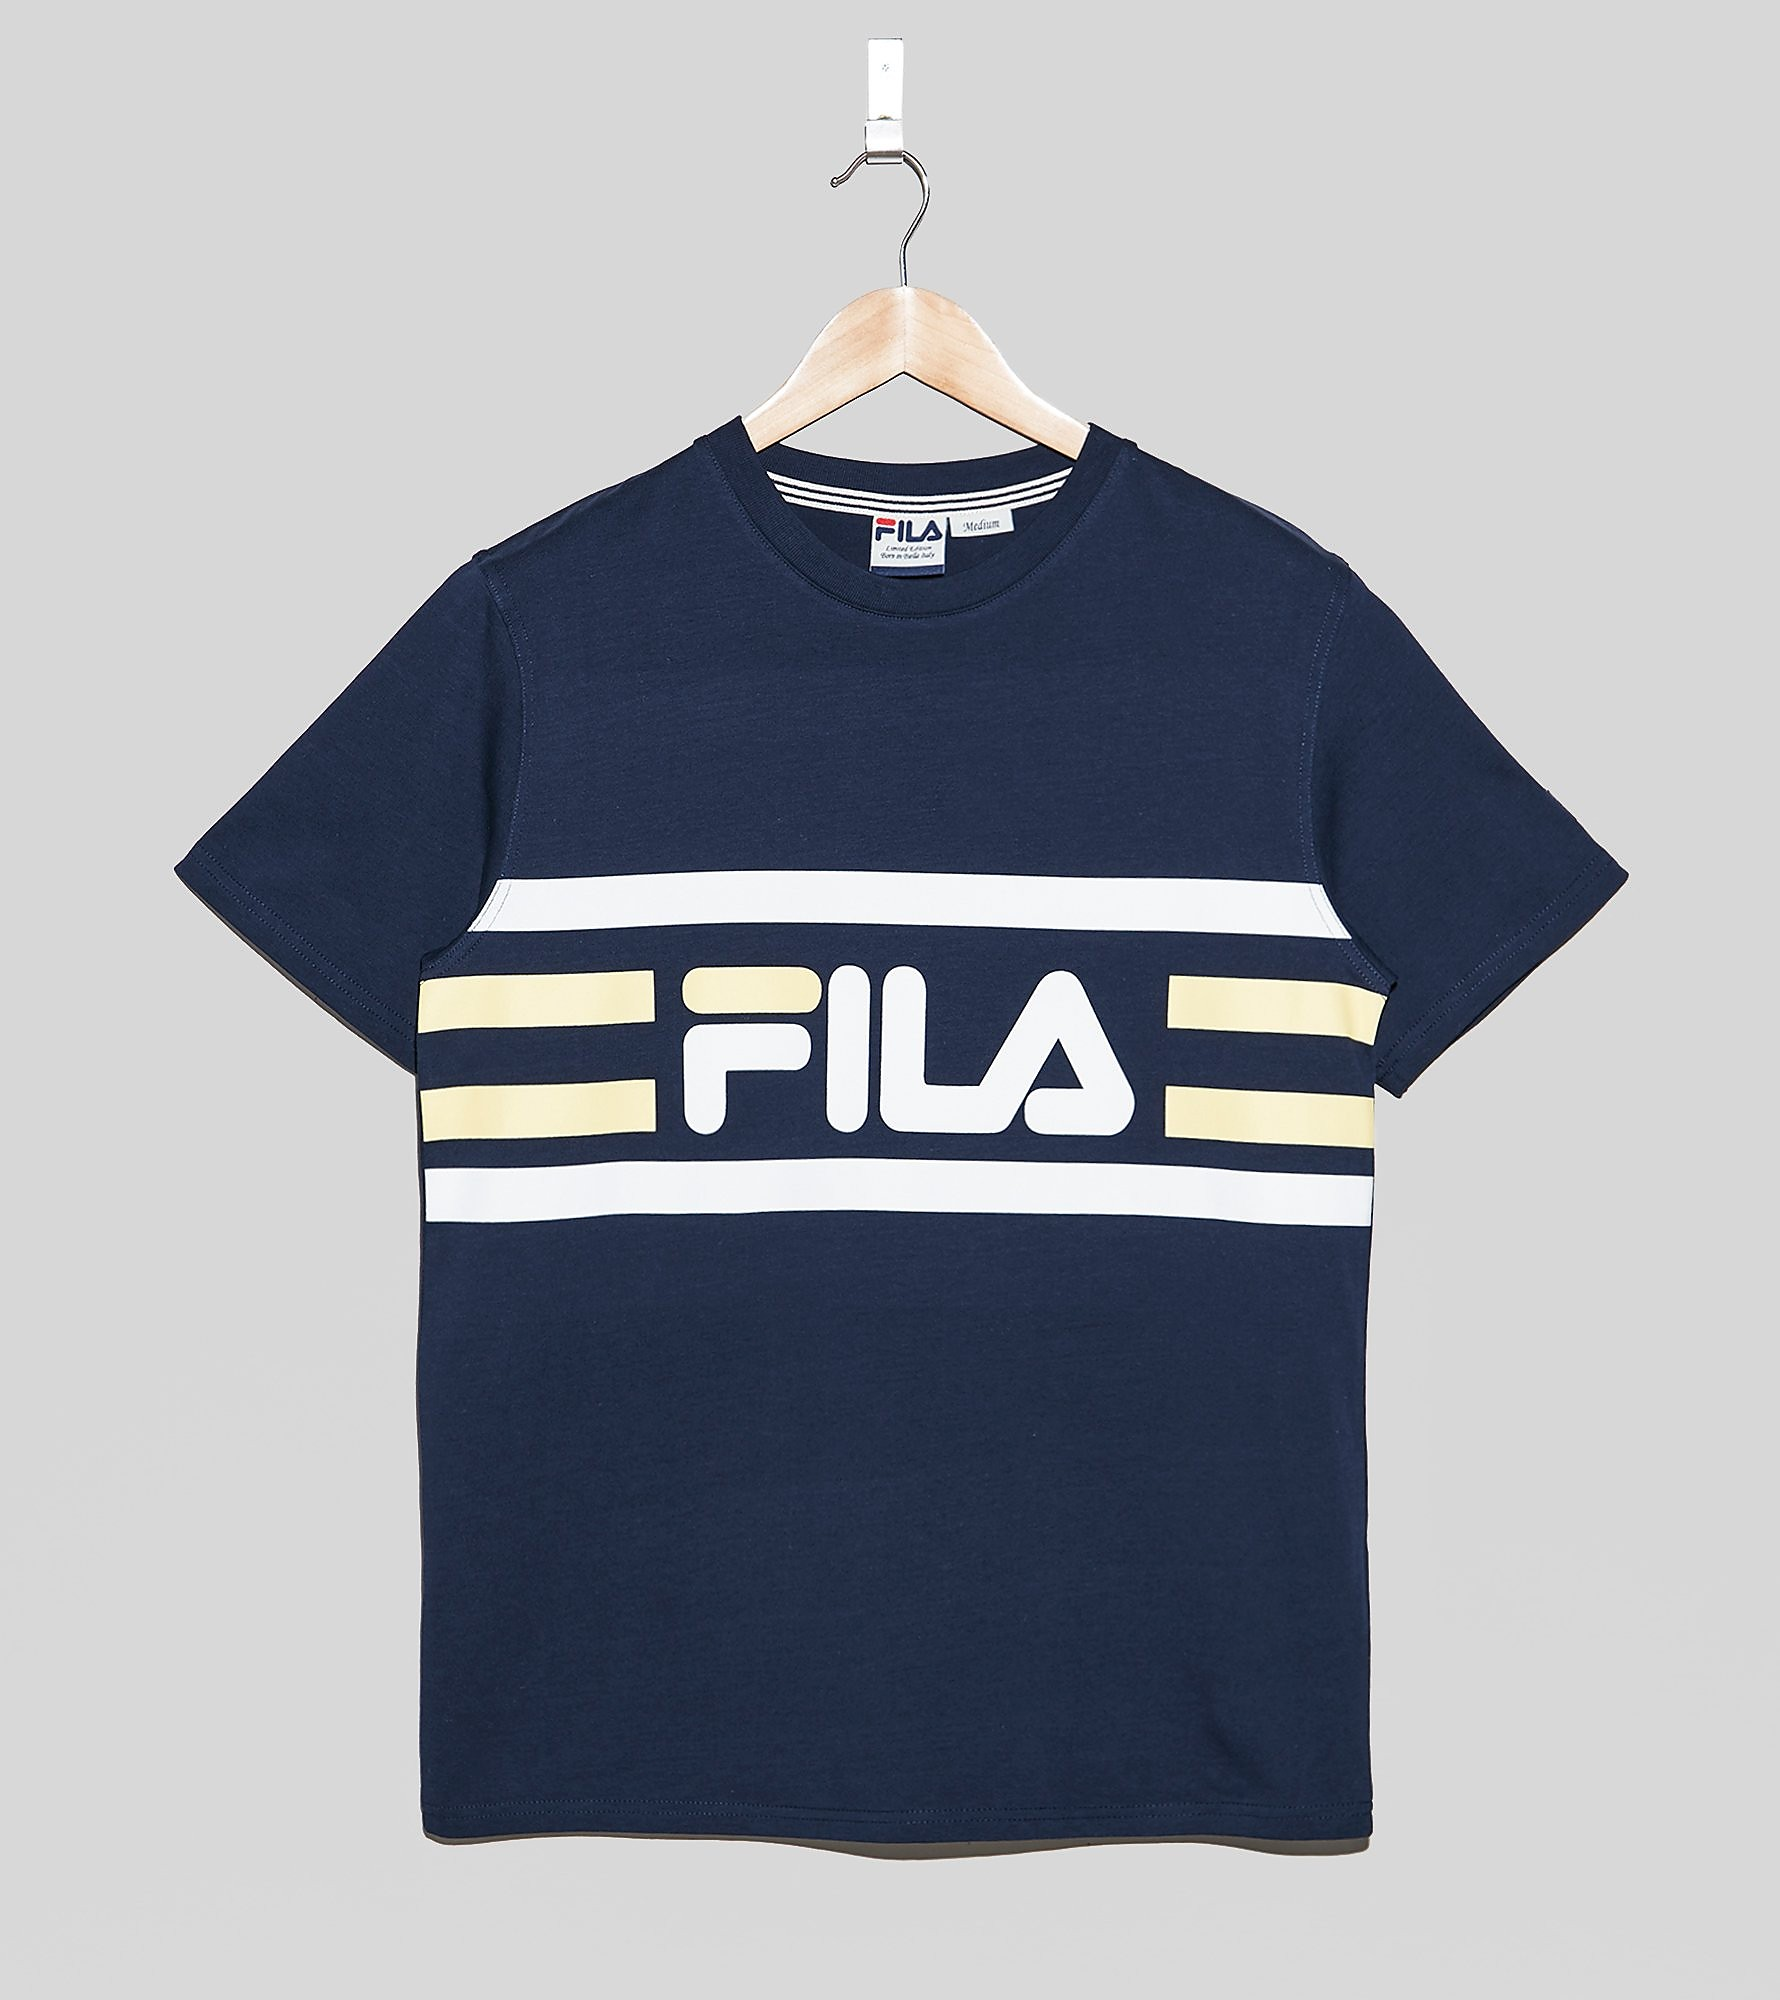 Fila Scratch T-Shirt - size? Exclusive